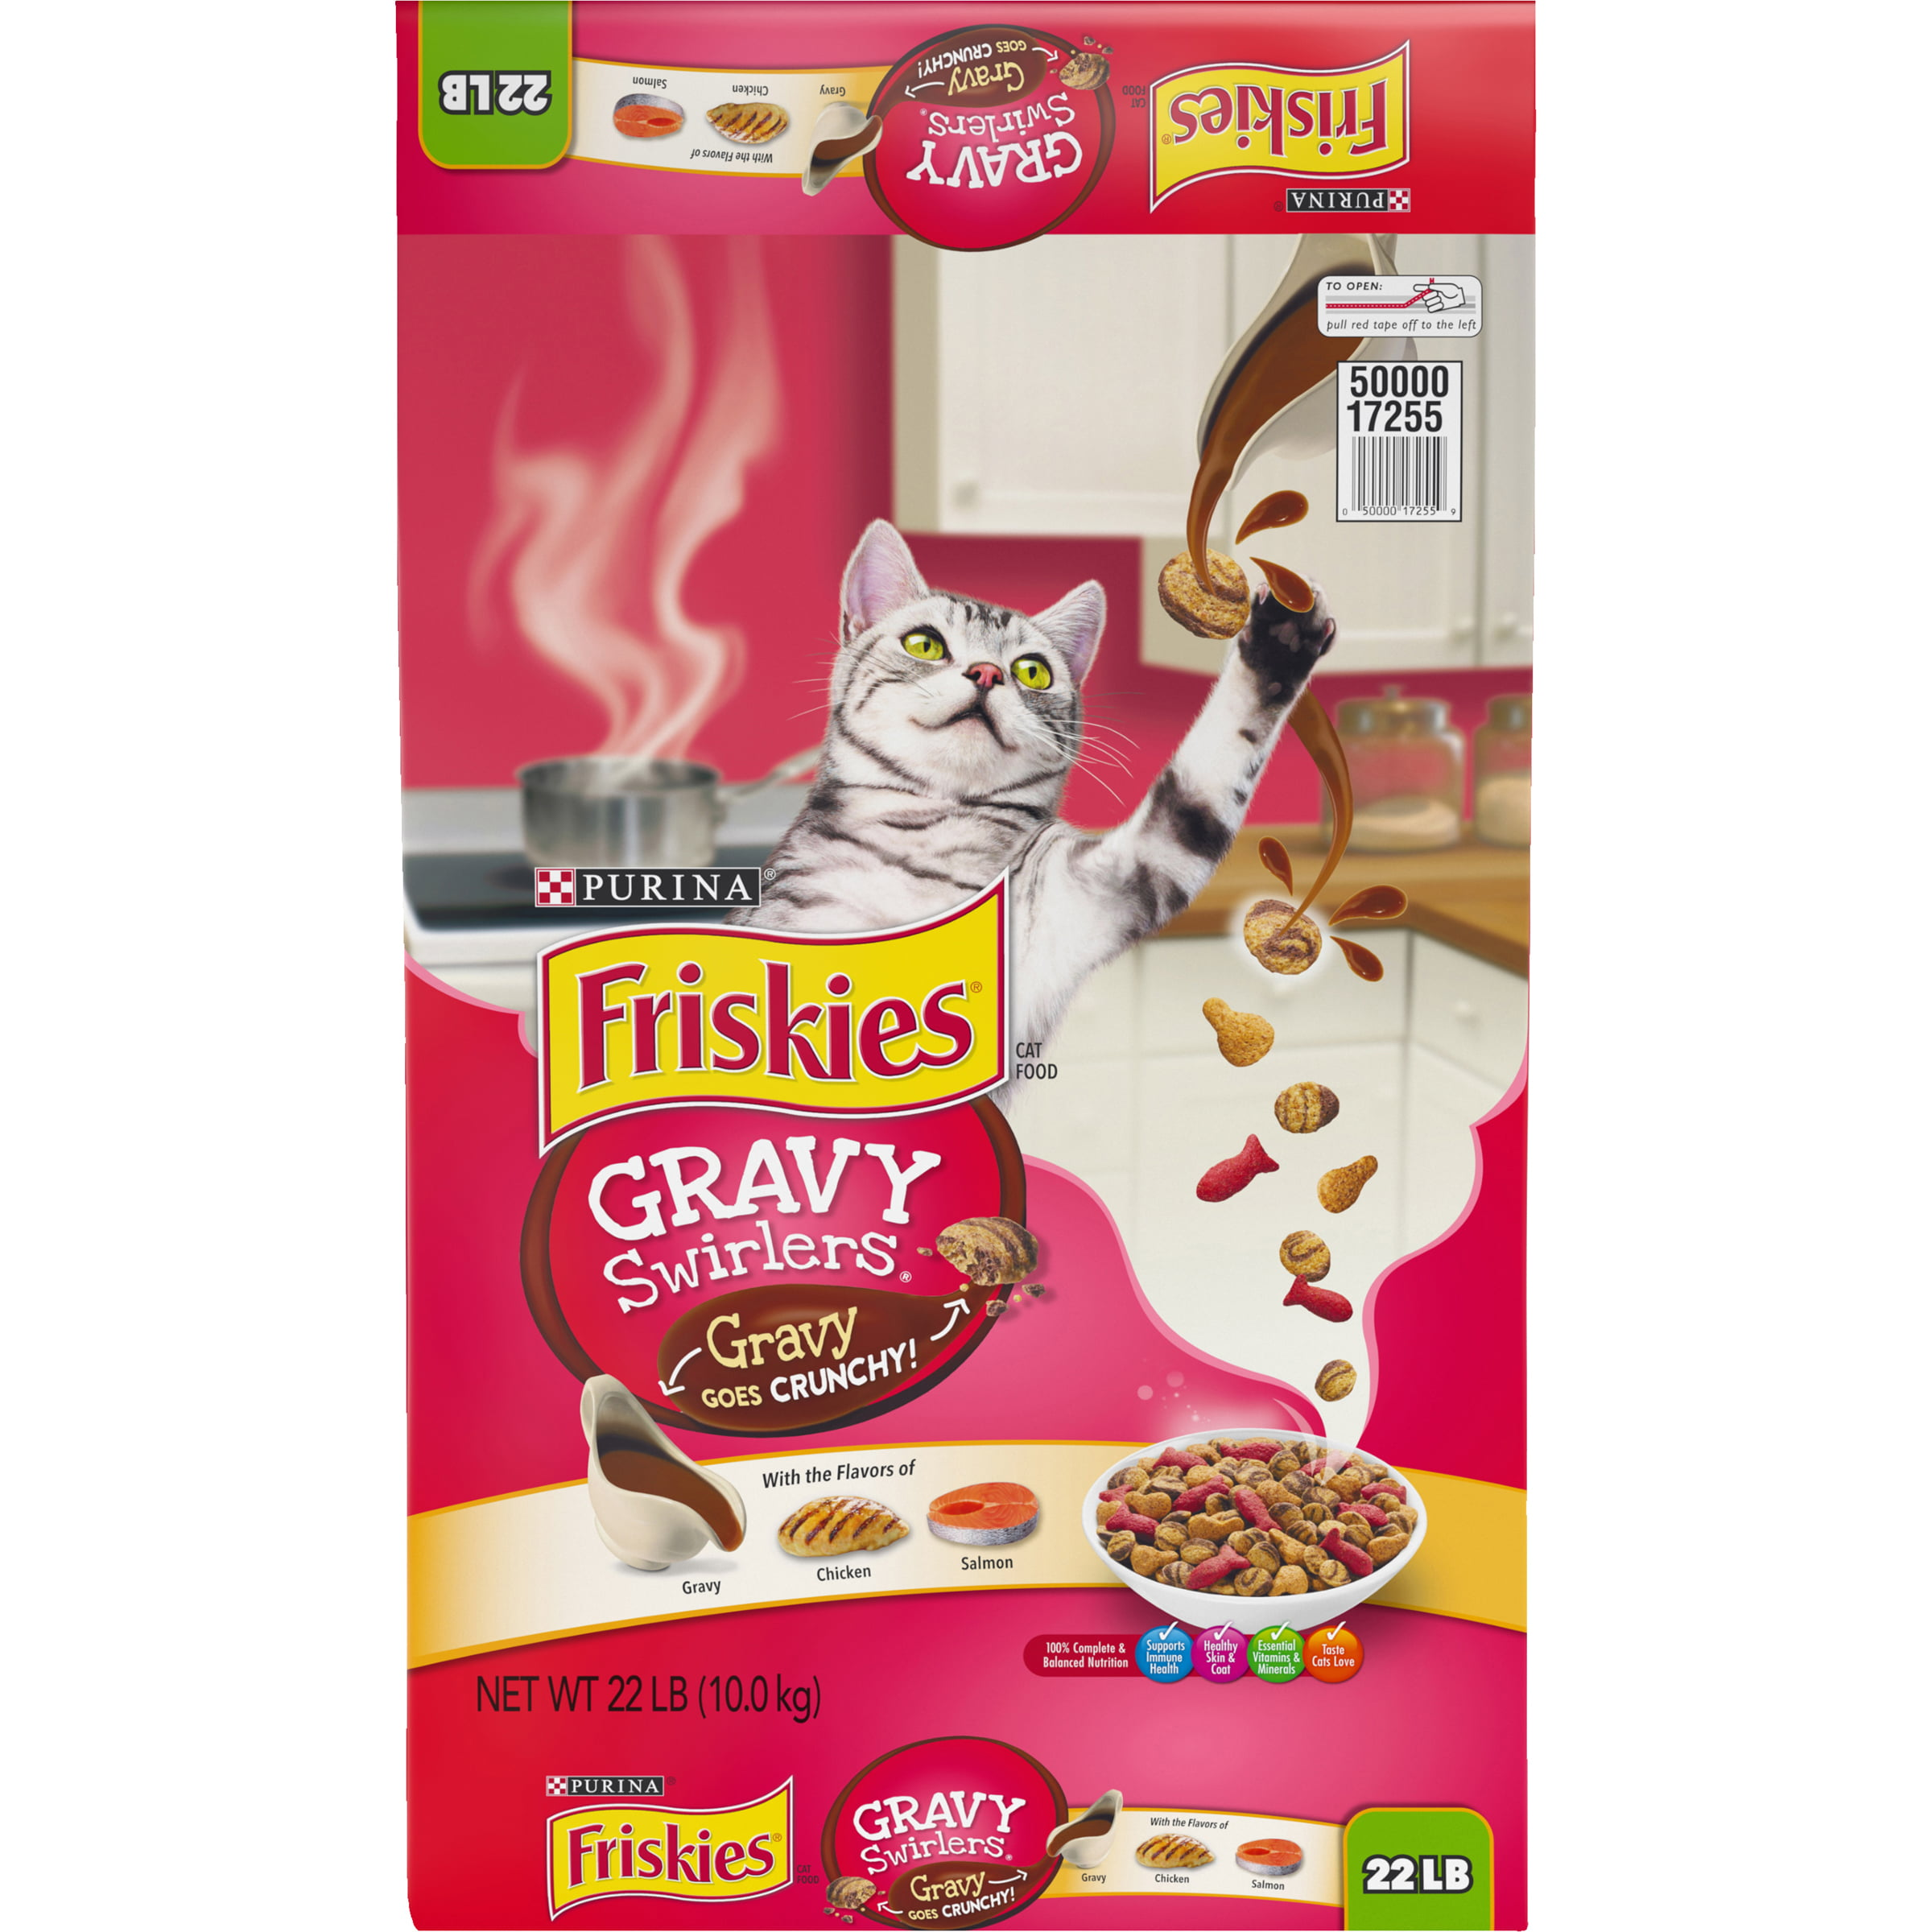 Friskies Gravy Swirlers Dry Cat Food, 22 lb by Nestle Purina Petcare Company